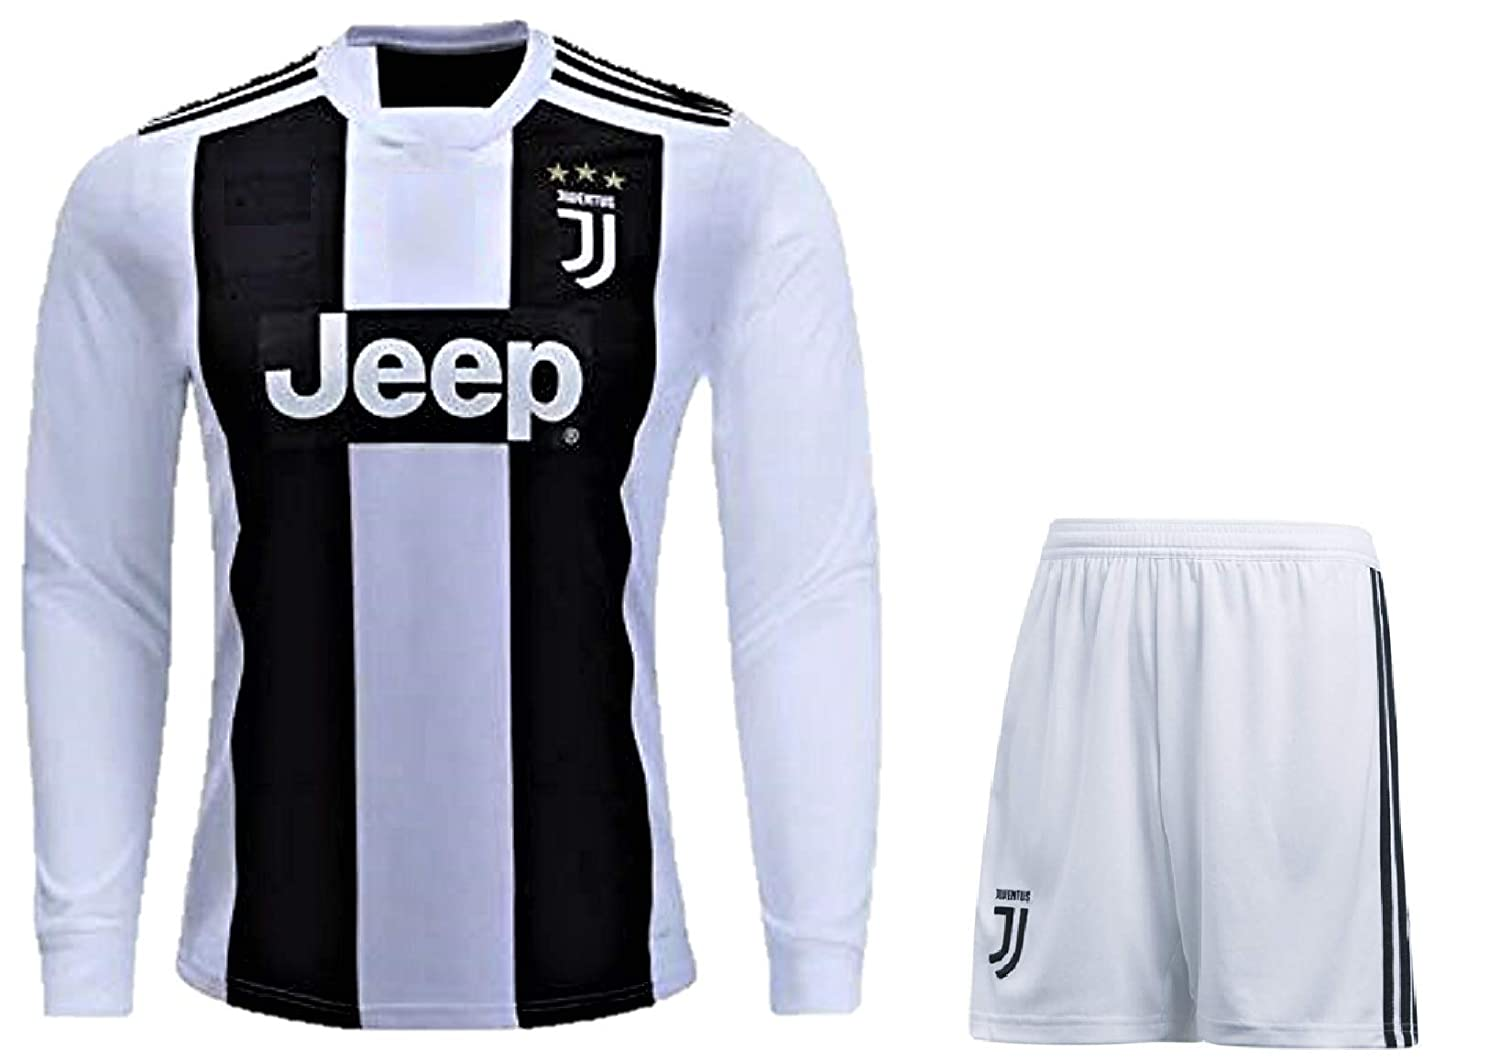 hot sale online d448b 0d6e4 HeadTurners Cristiano Ronaldo Juventus Full Sleeves Set (Jersey and Shorts)  for Kids, Boys & Mens (NonBranded)